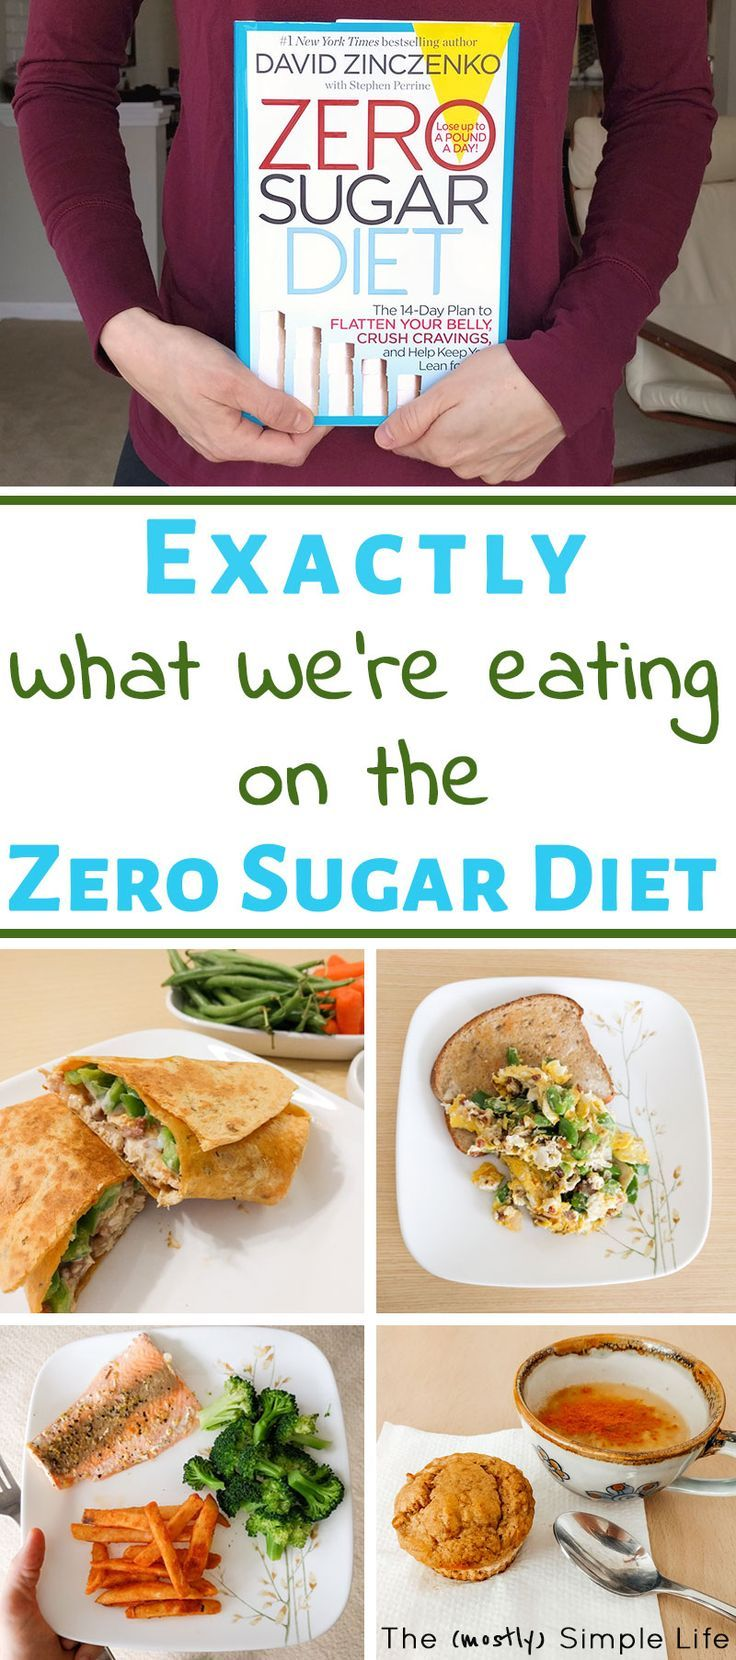 food pictures associated with the zero sugar diet